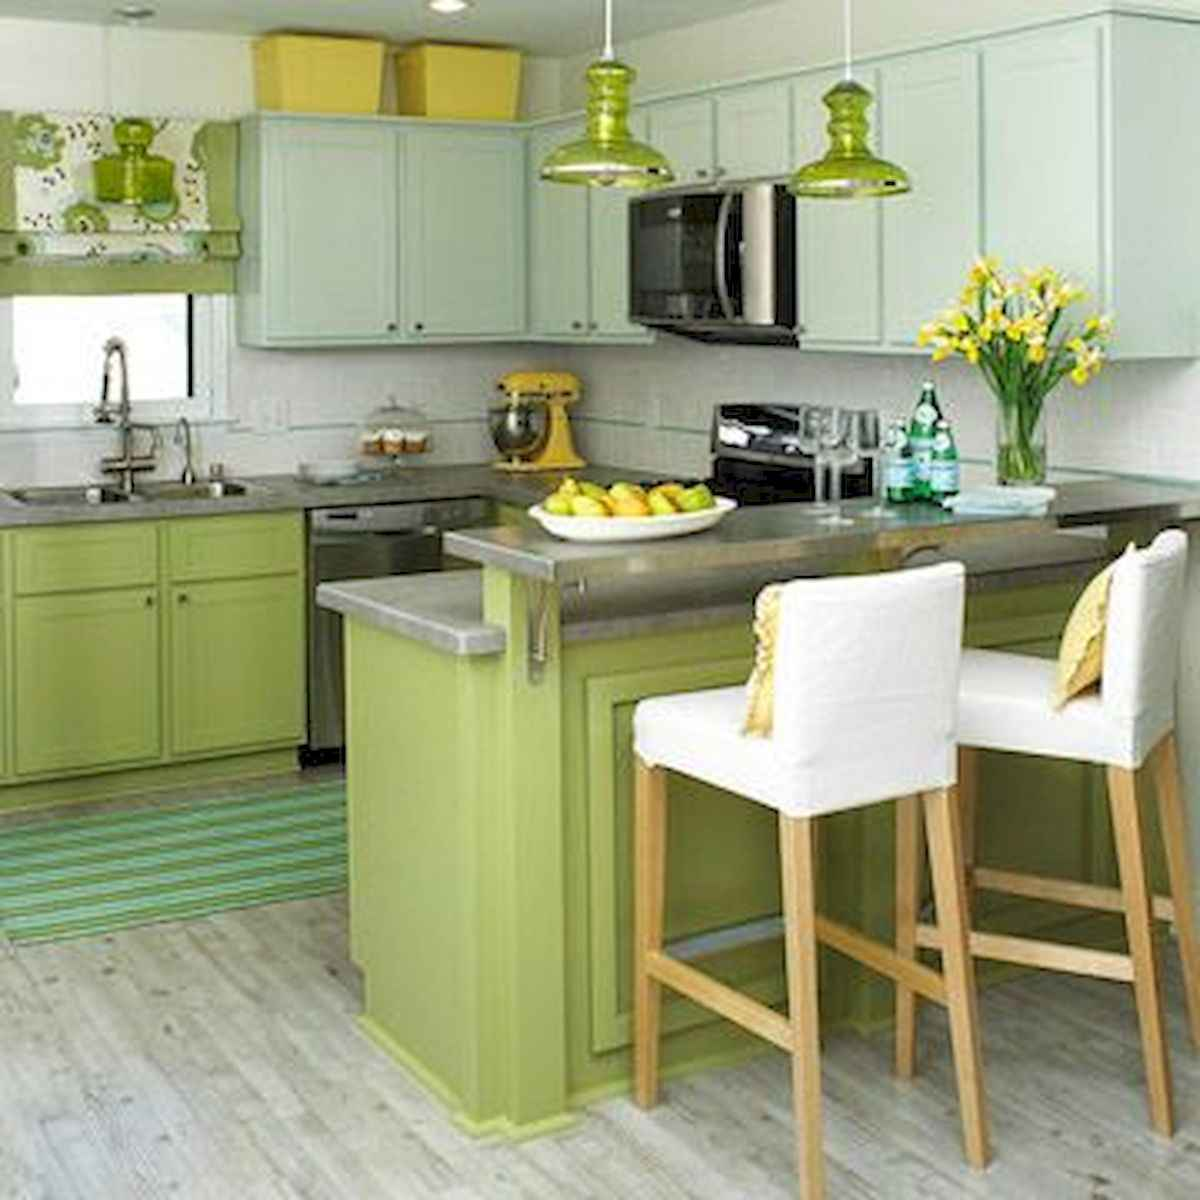 80+ Fantastic Colorful Kitchen Decor Ideas And Remodel for Summer Project (84)